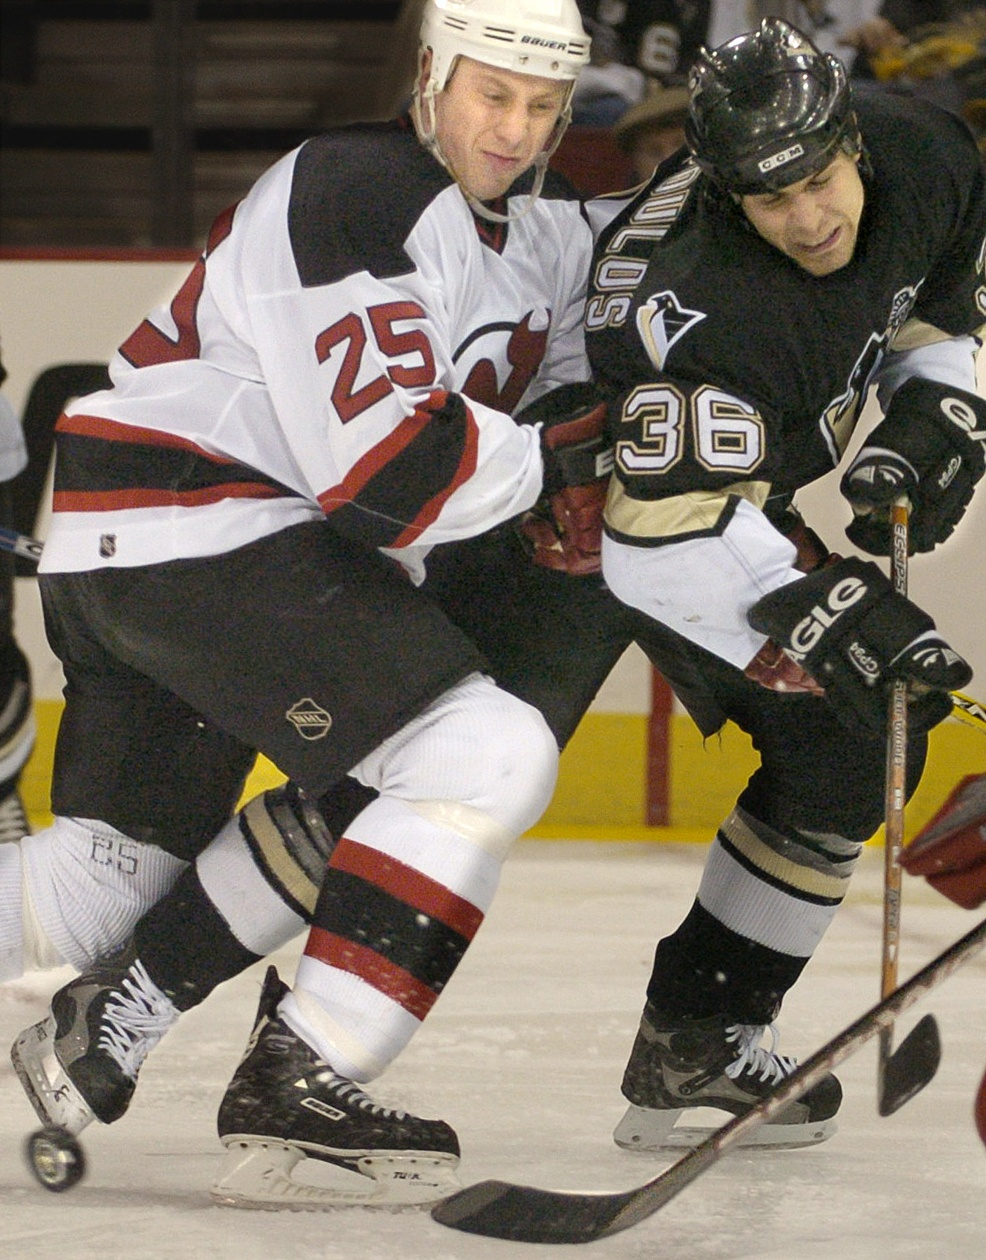 Tom Kostopoulos fights for the puck with New Jersey defenseman David Hale at Mellon Arena on Jan. 20, 2004. (Peter Diana/Post-Gazette)